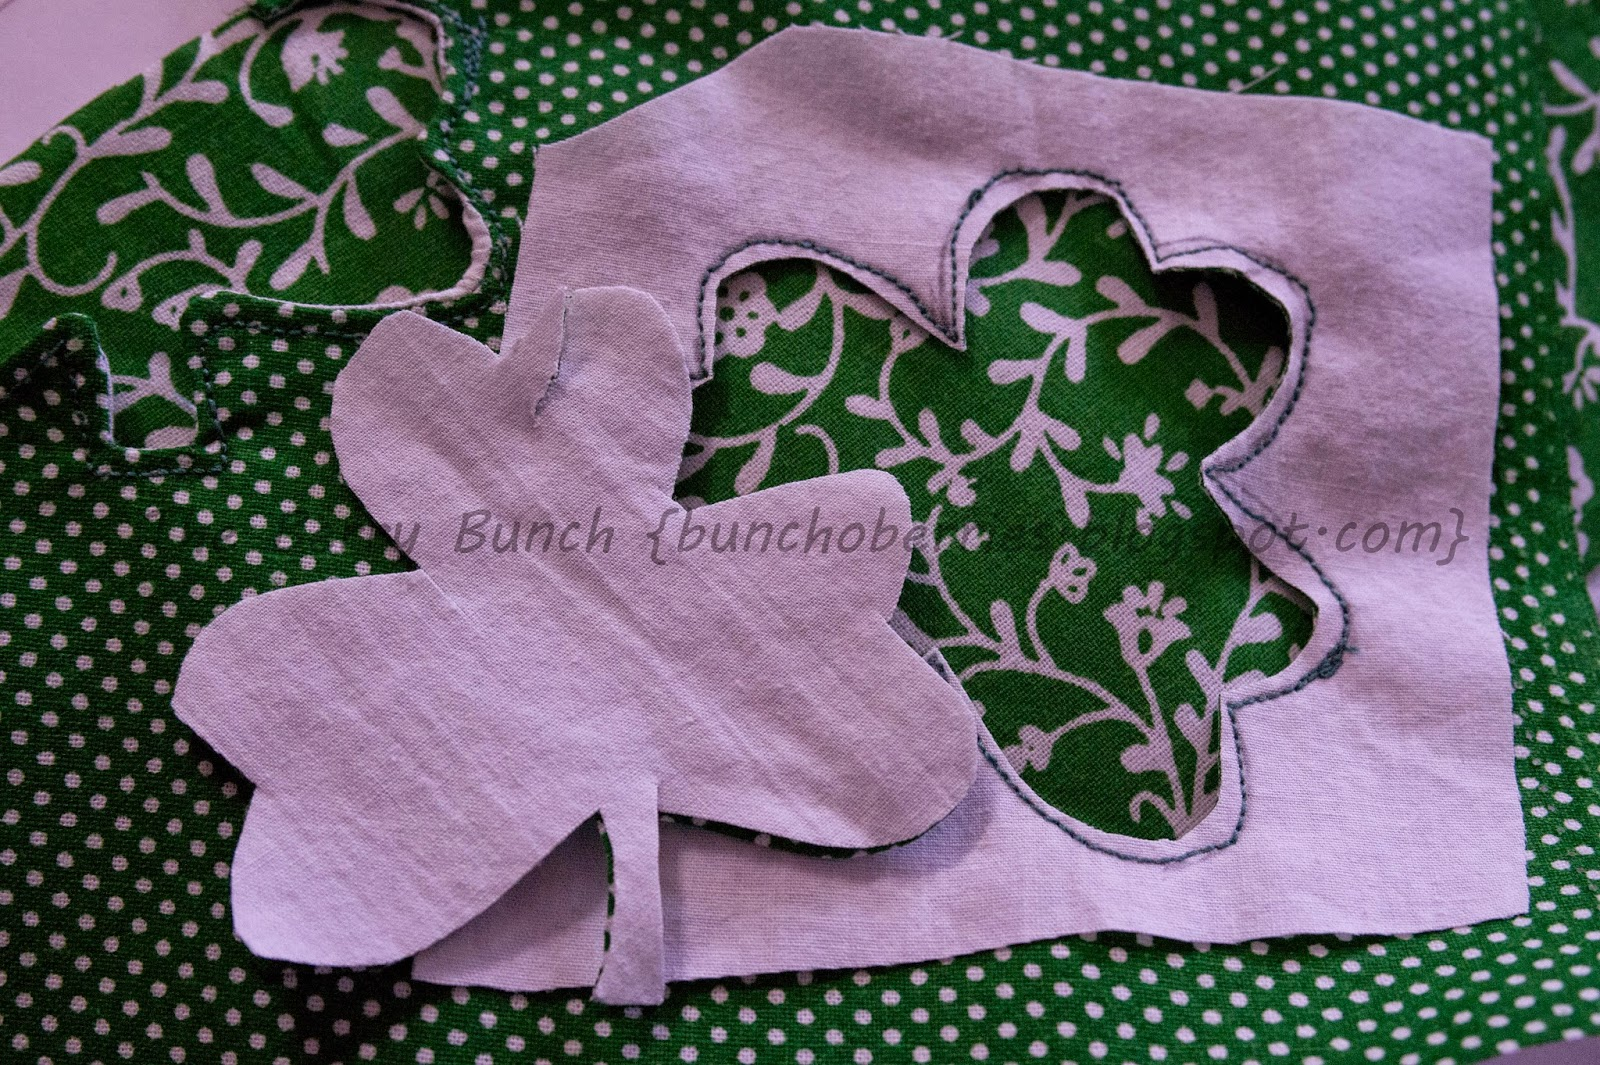 The Berry Bunch: Happy St. Patrick's Day: Shamrock Cut Out Mug Rug Tutorial